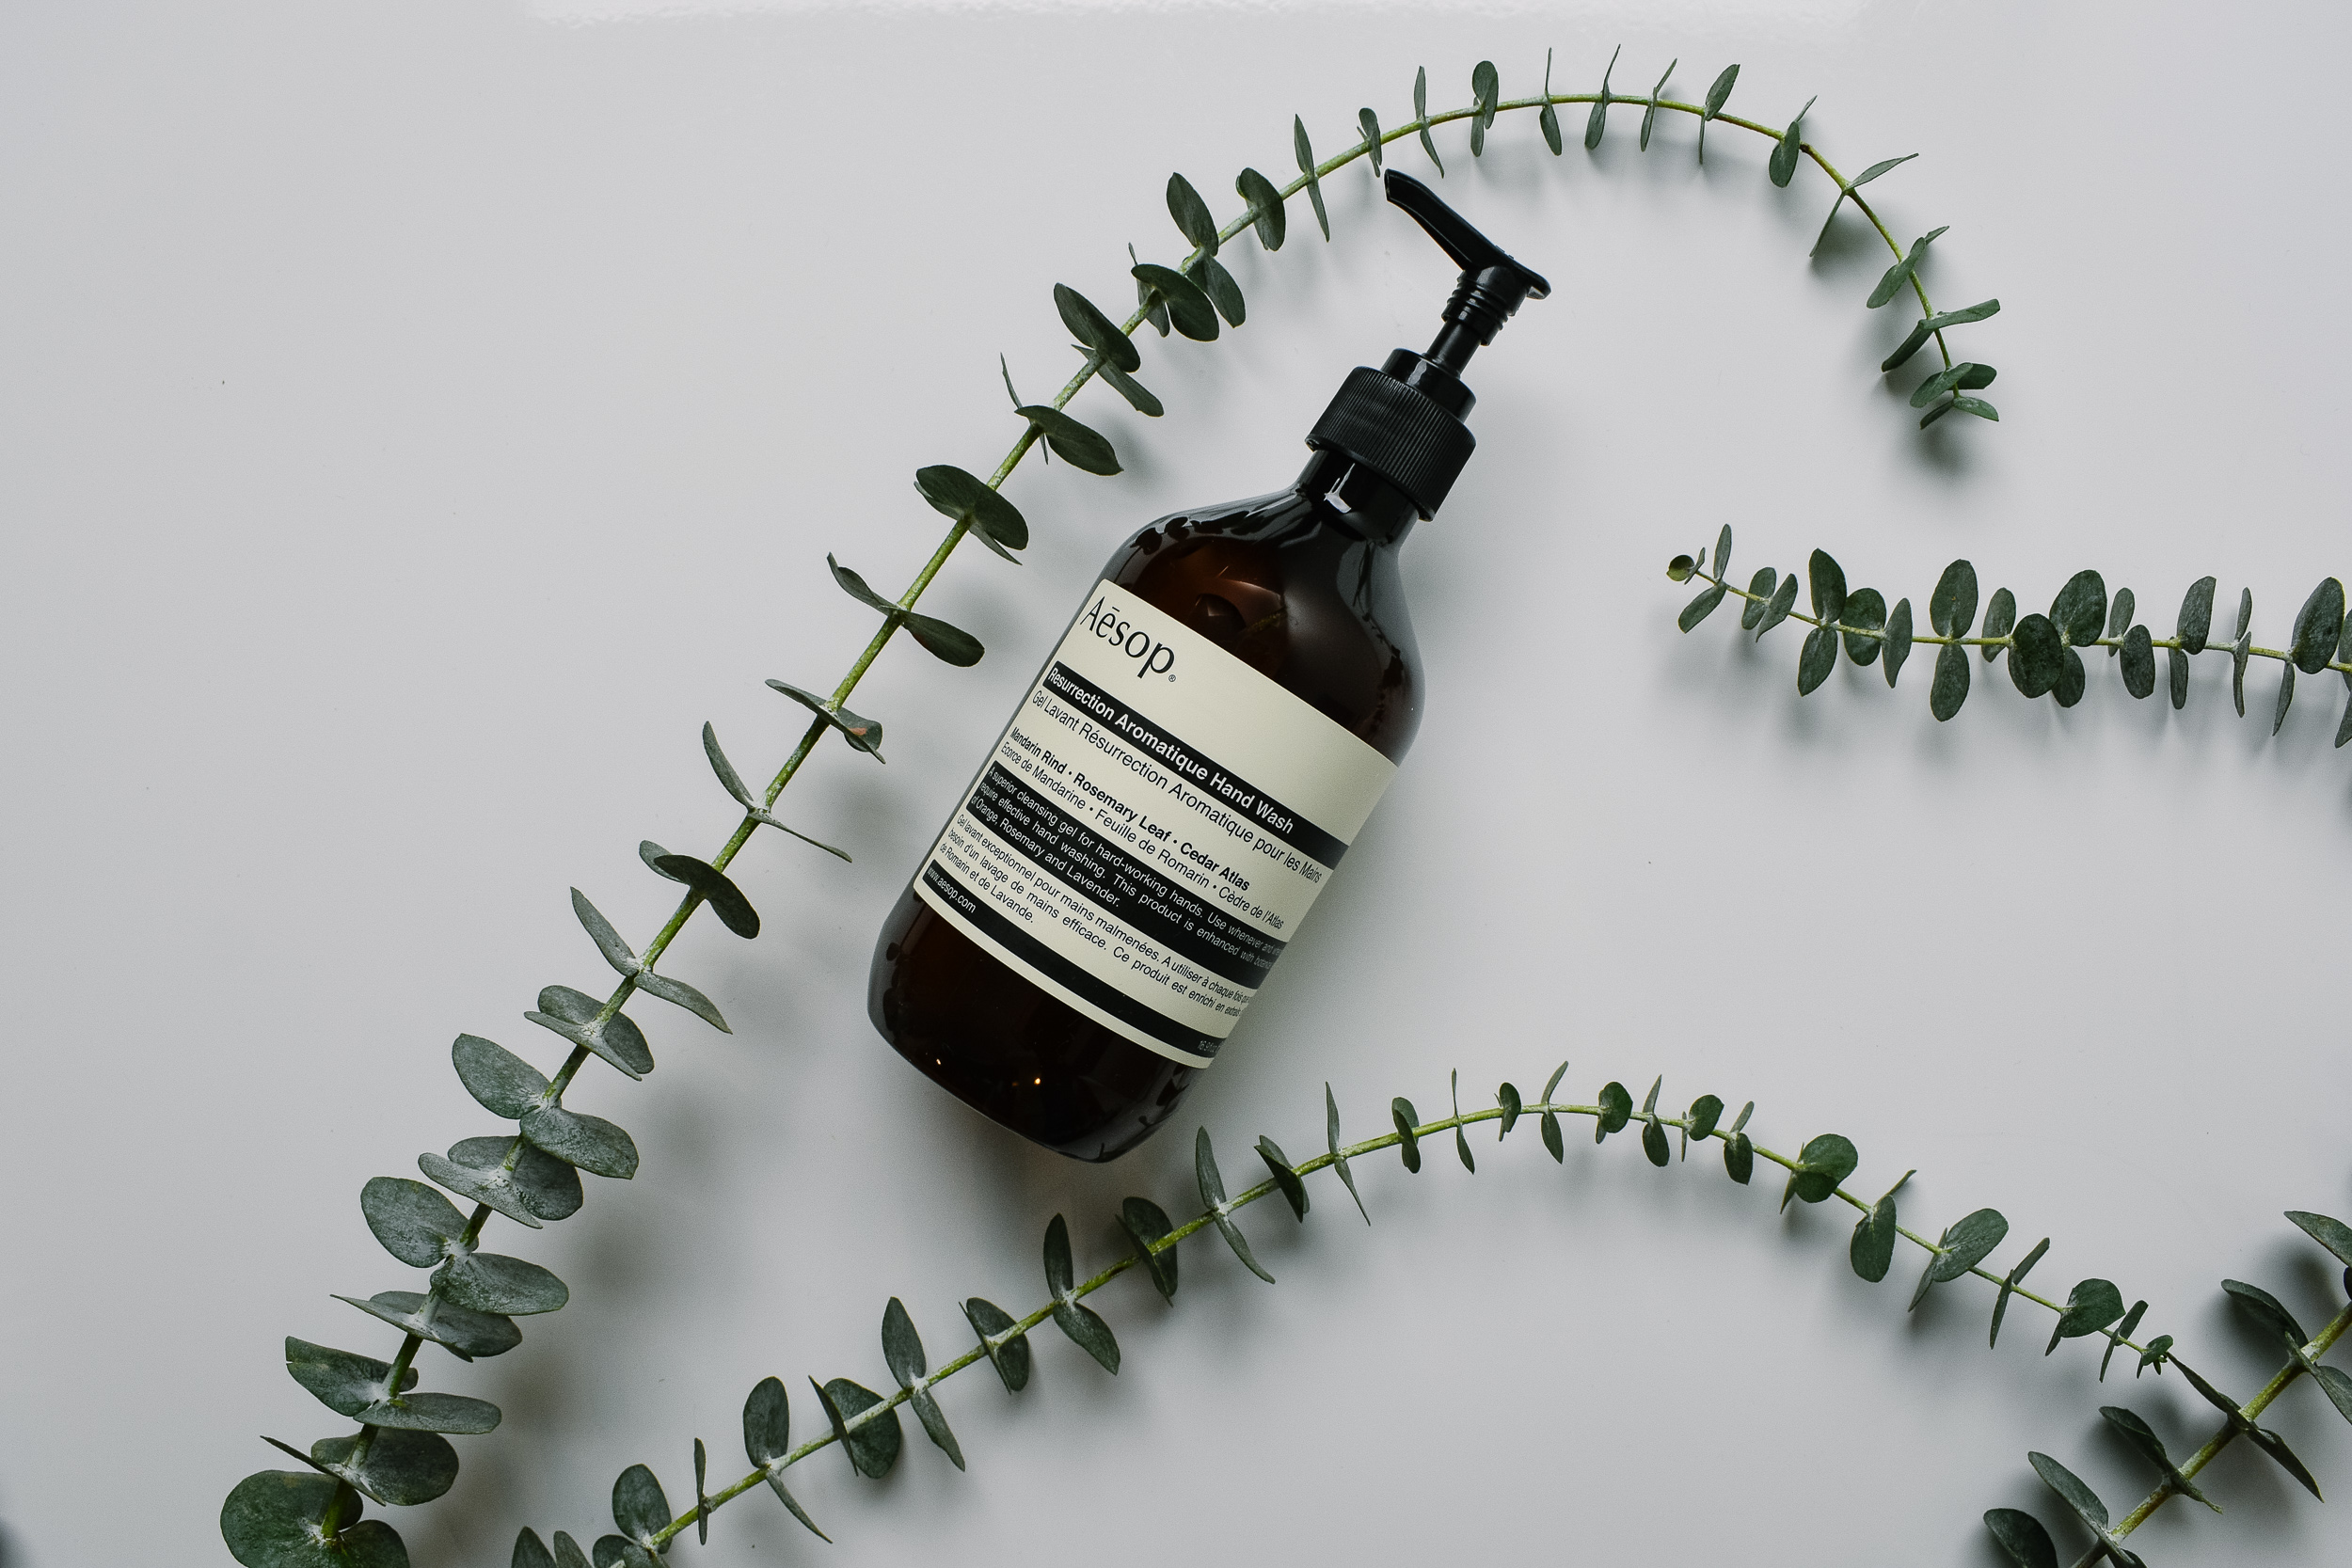 Aesop Hand Soap - Aesop formulates high quality skin, hair and body care products. They independently investigate widely to source plant-based and laboratory-made ingredients, and use only those with a proven record of safety and efficacy.